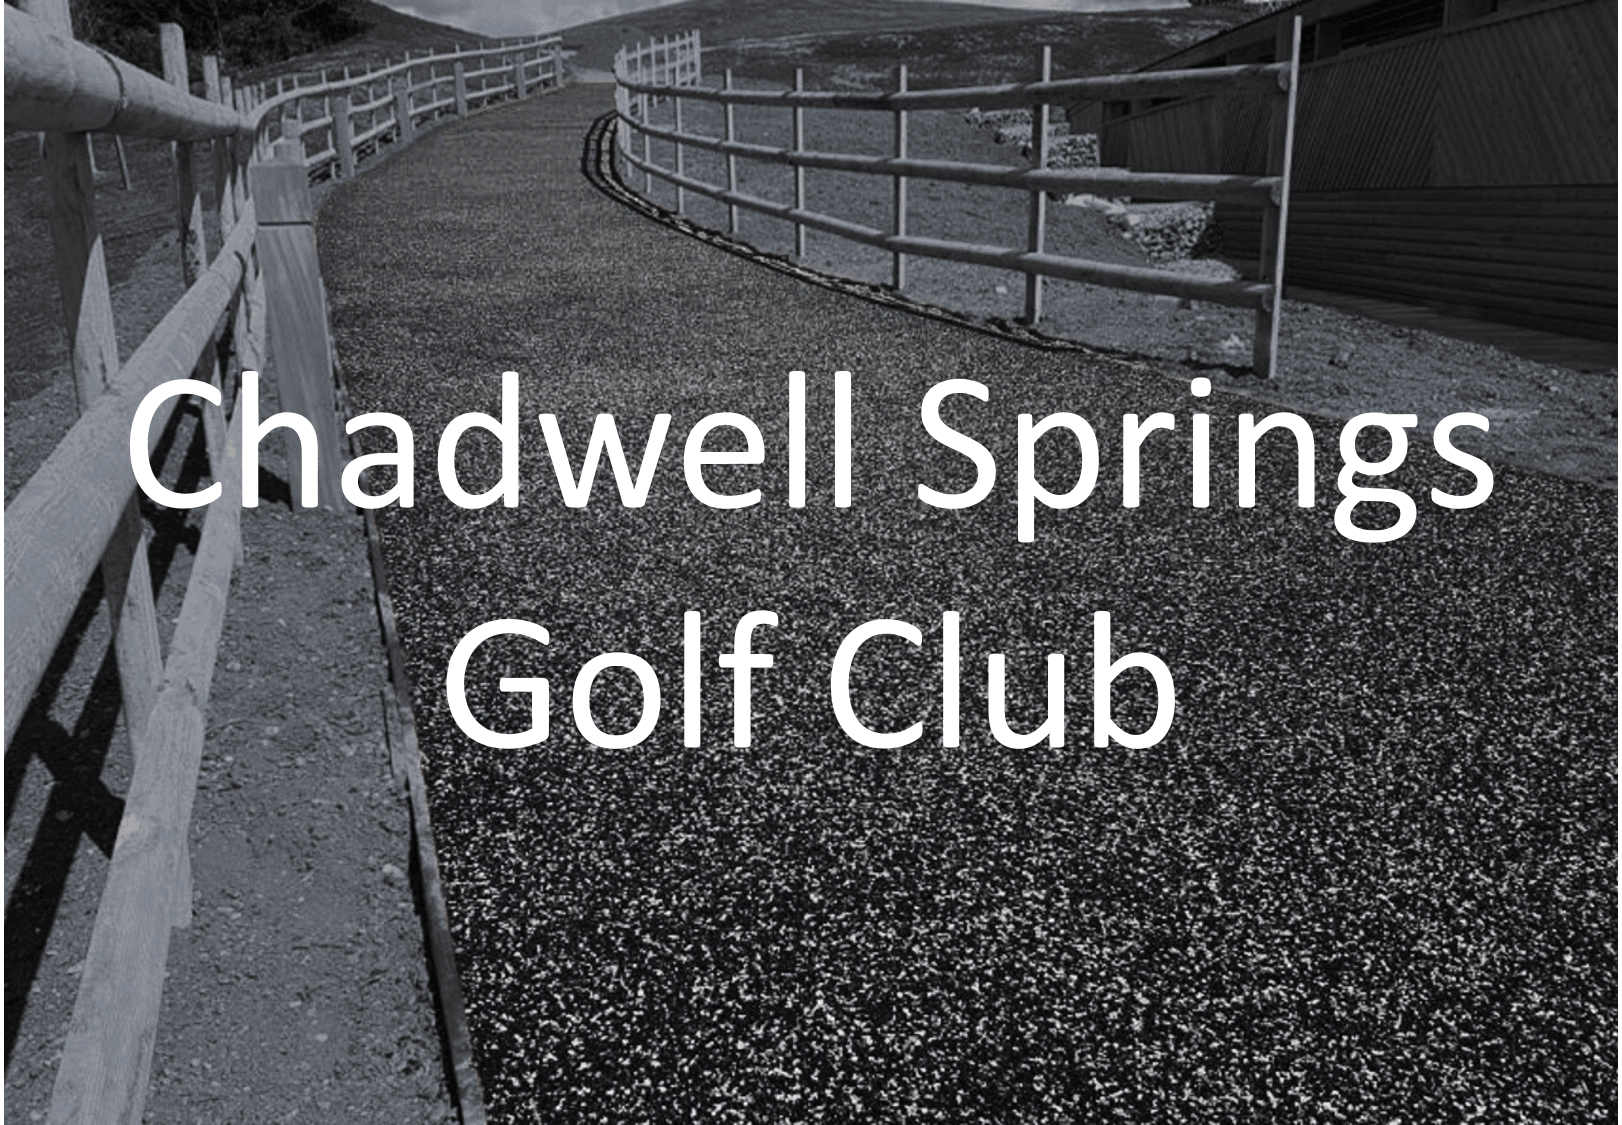 Chadwell Springs Golf Club